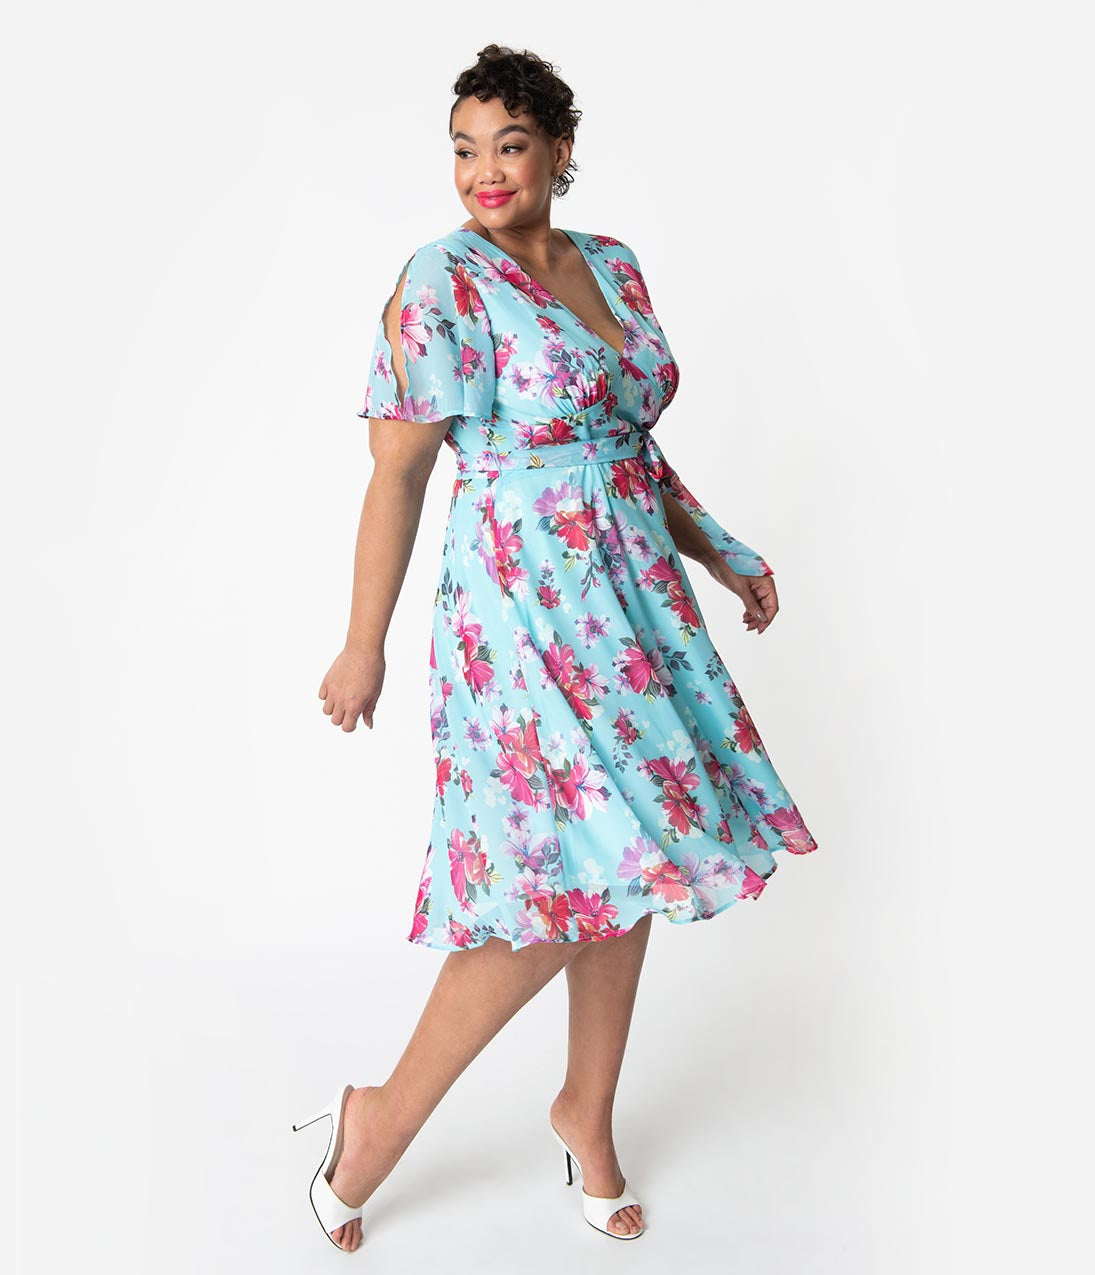 1950s Fashion History: Women's Clothing Hell Bunny Plus Size 1950S Light Blue  Pink Floral Chiffon Primavera Midi Dress $88.00 AT vintagedancer.com